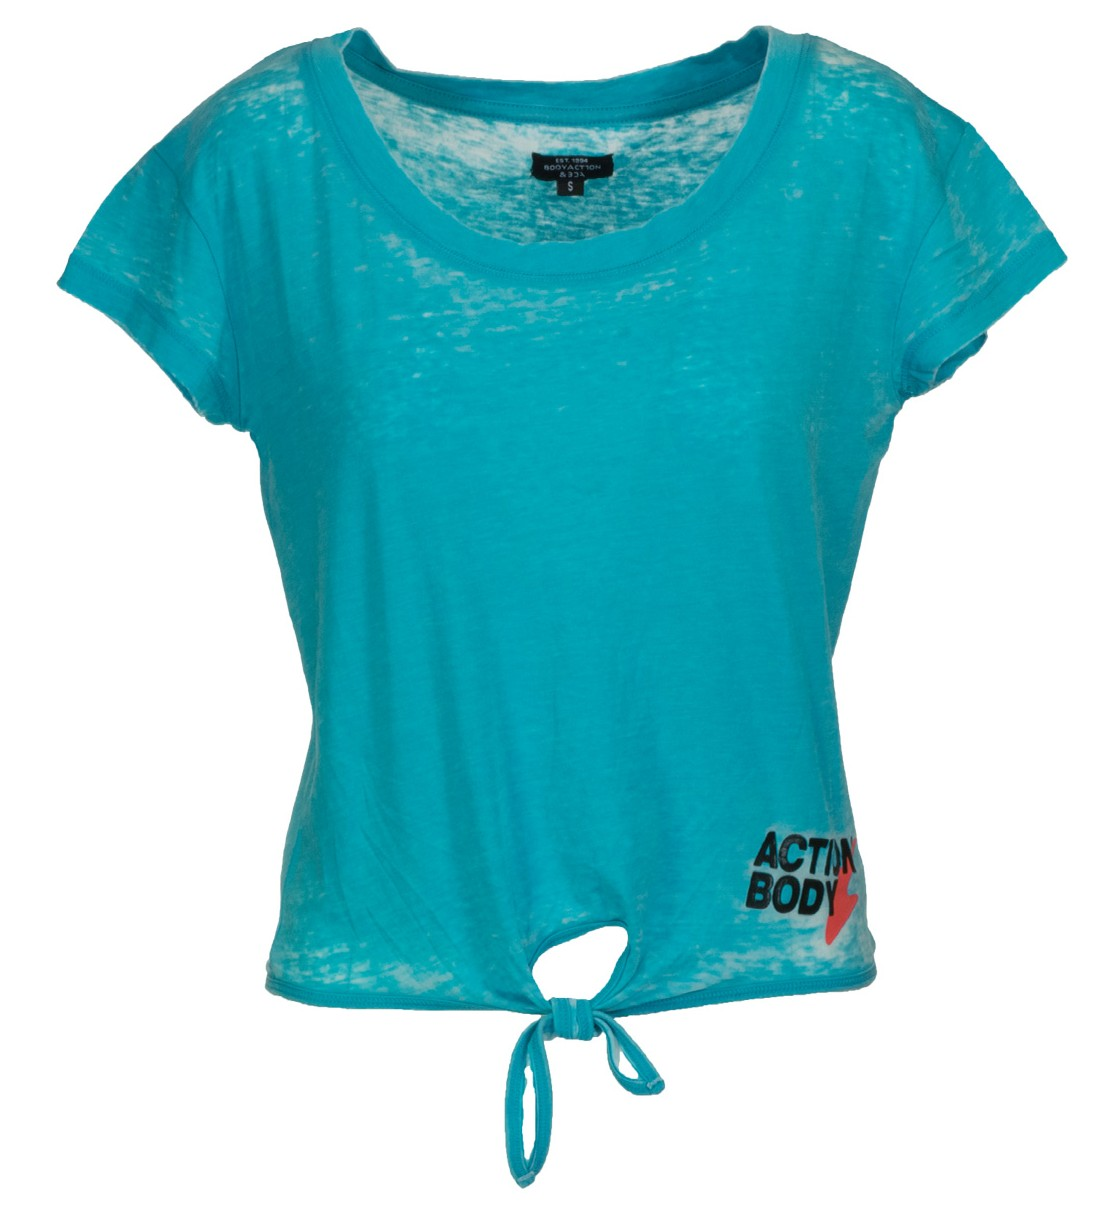 Body Action WOMEN LOOSE FIT S/S TOP